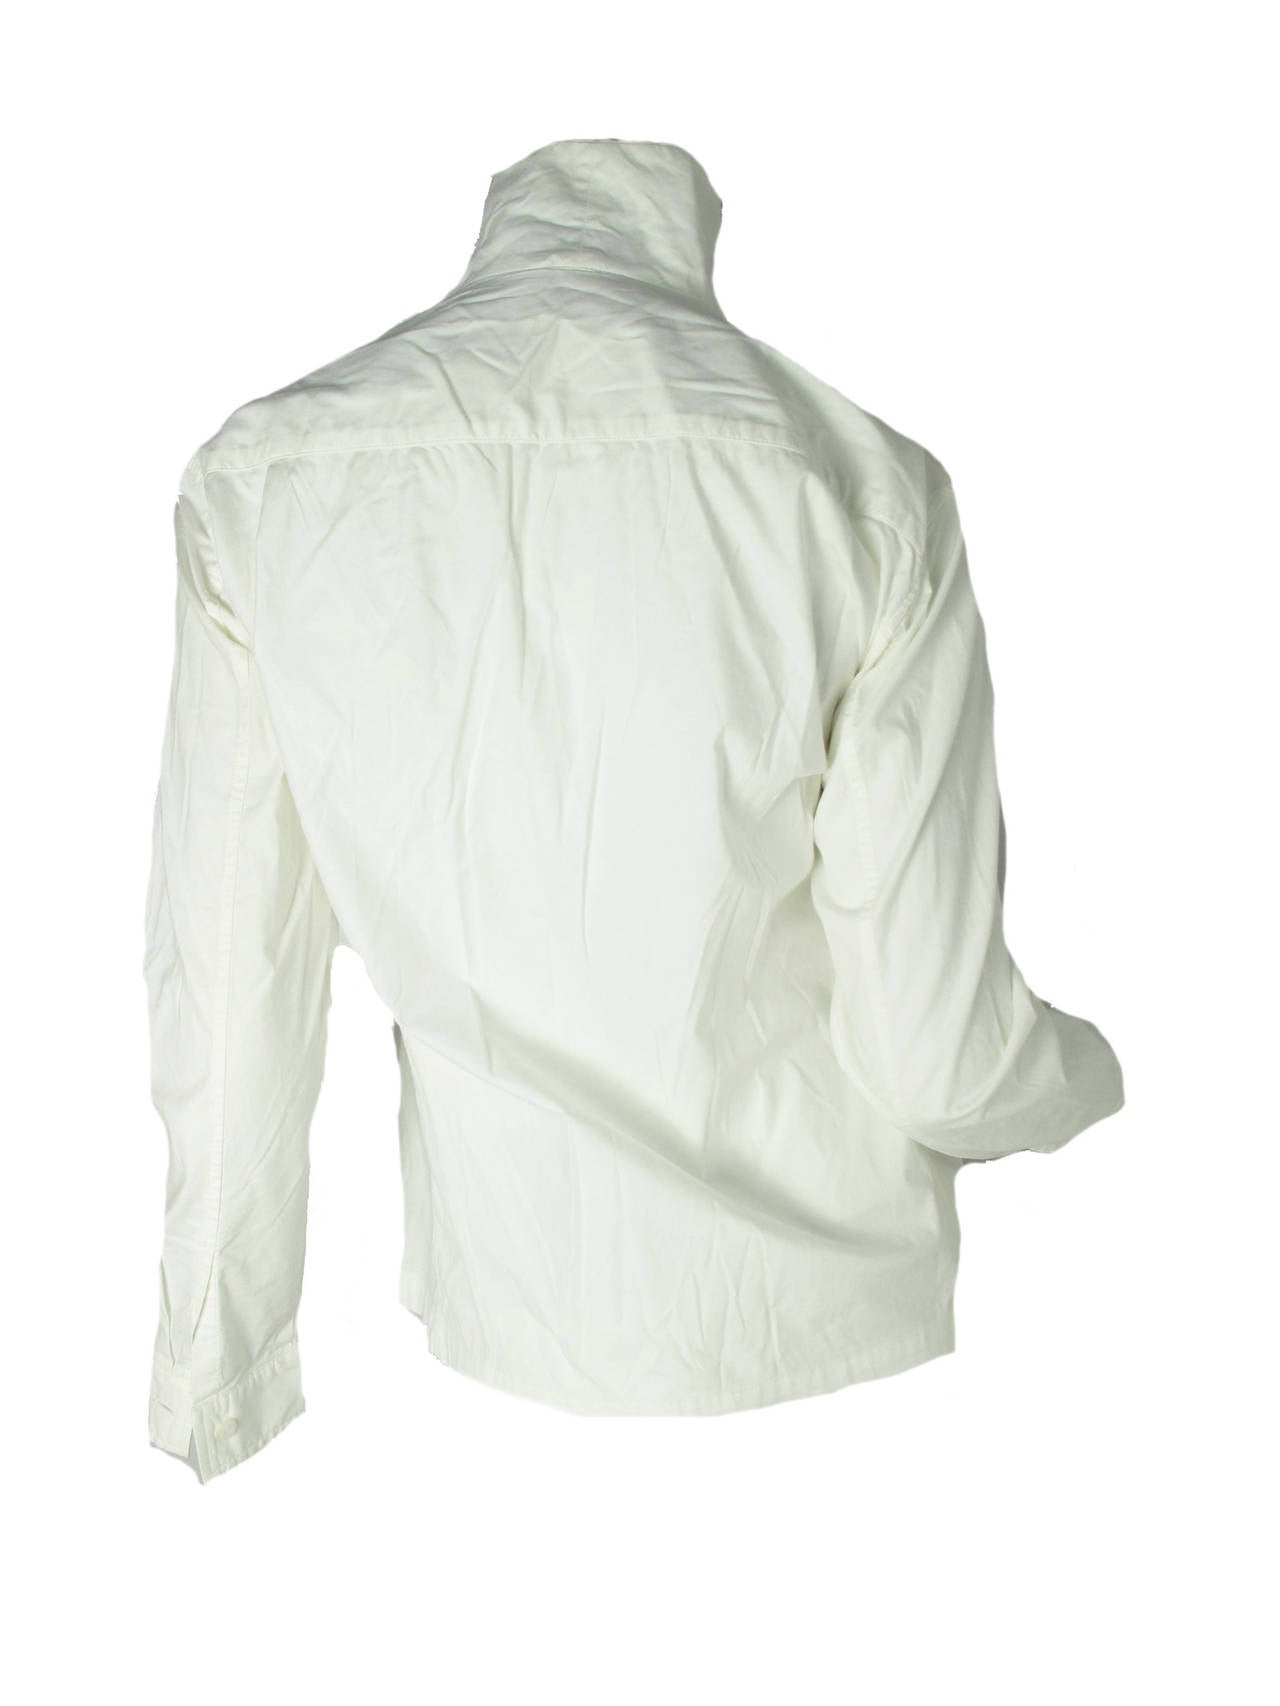 Gray Issey Miyake White Button Down Shirt For Sale